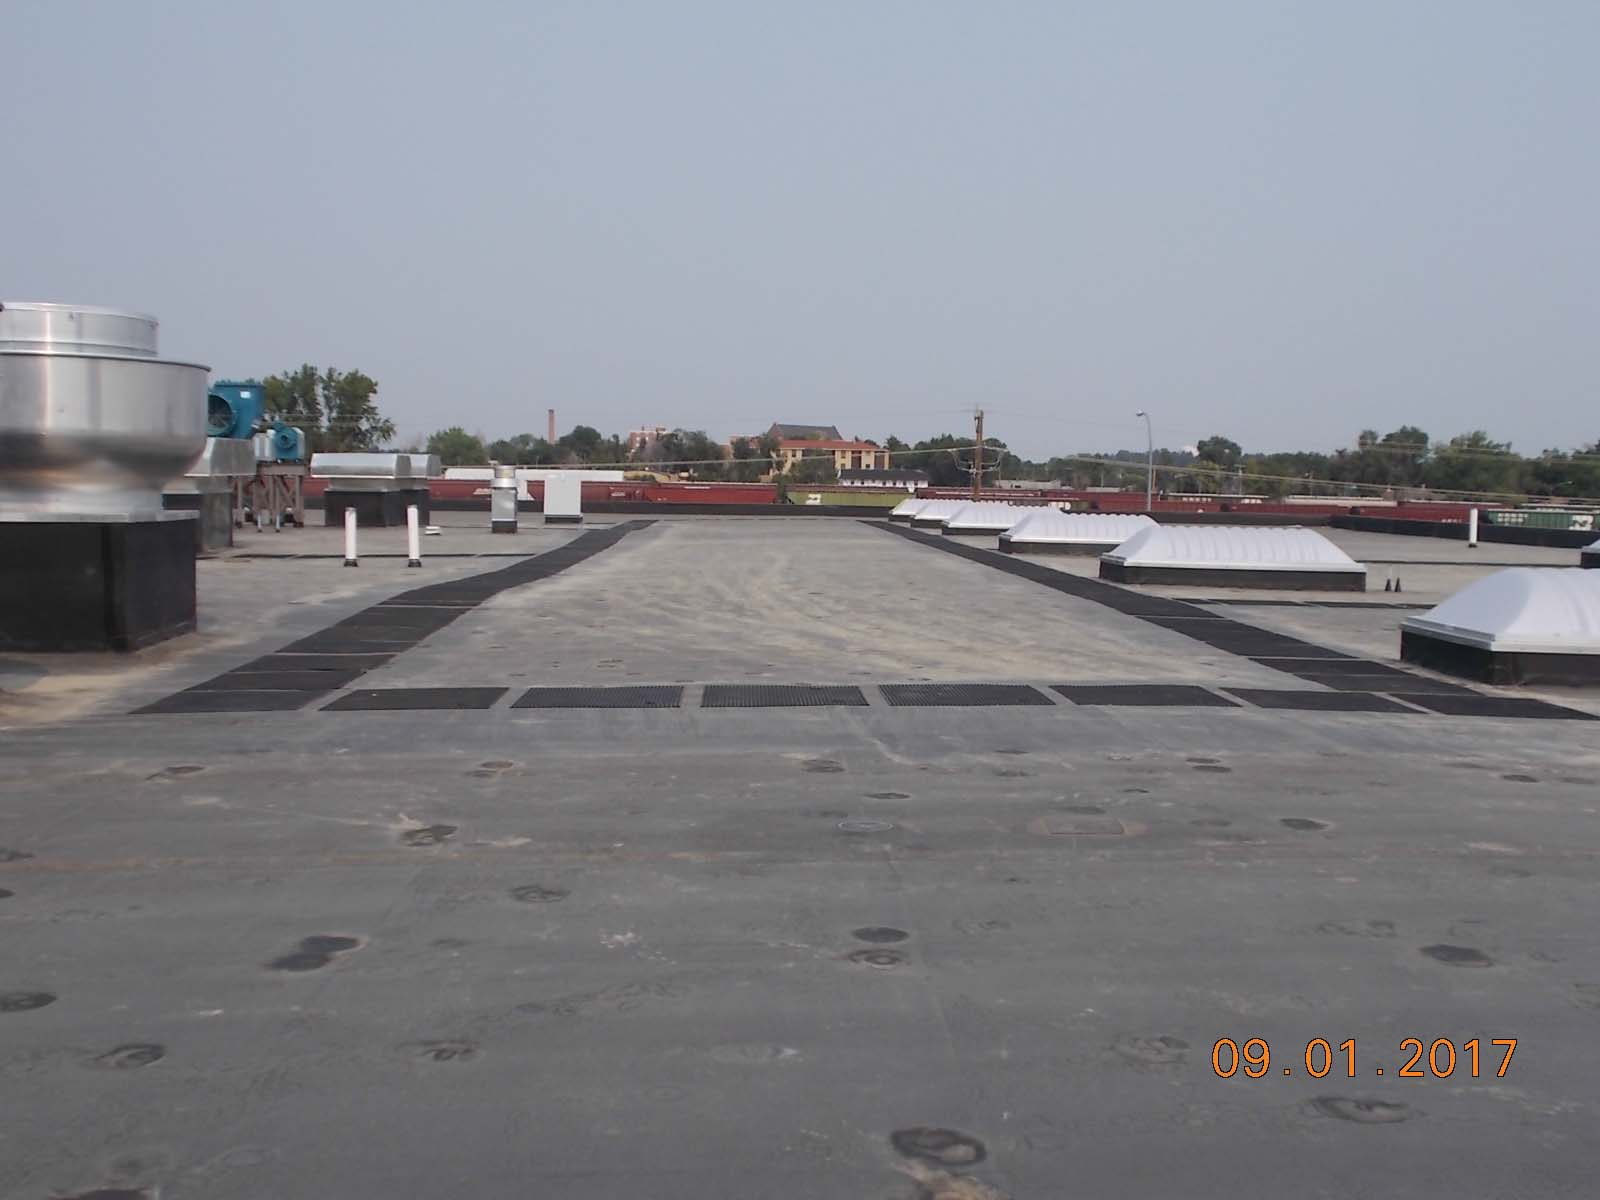 Looking north at the walkway pads installed on the roof by Twin City Roofing.